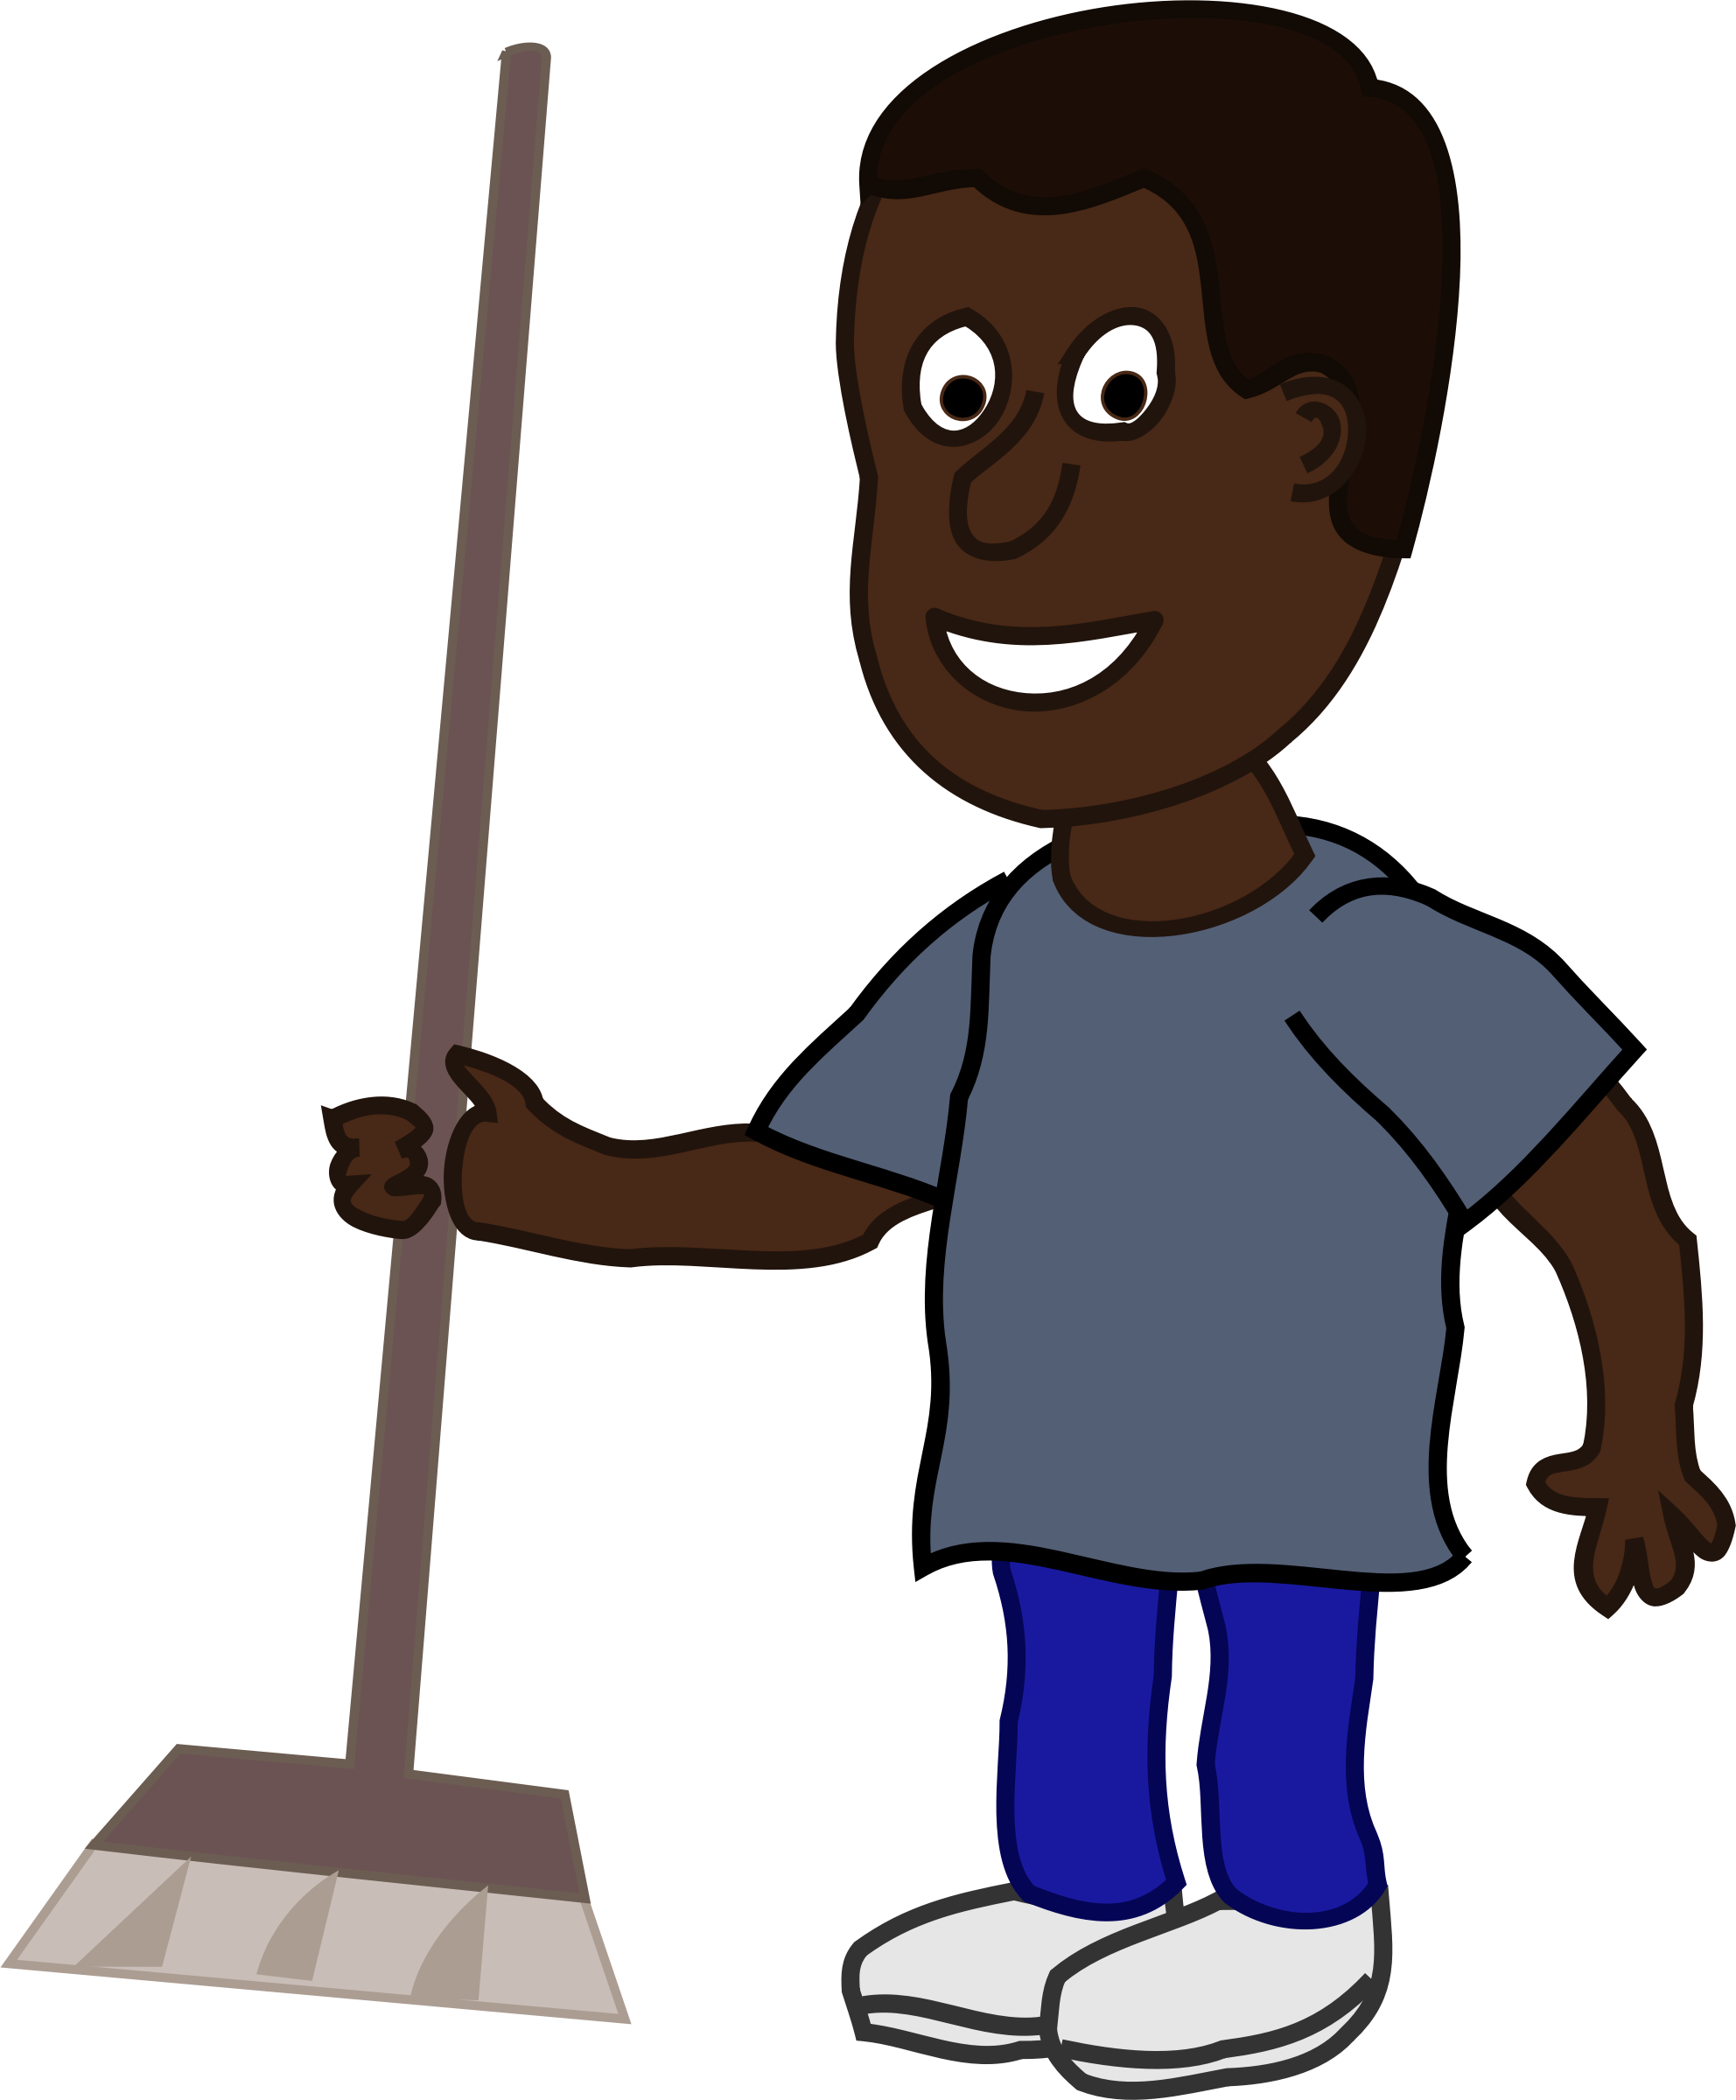 African Man with Broom by j4p4n